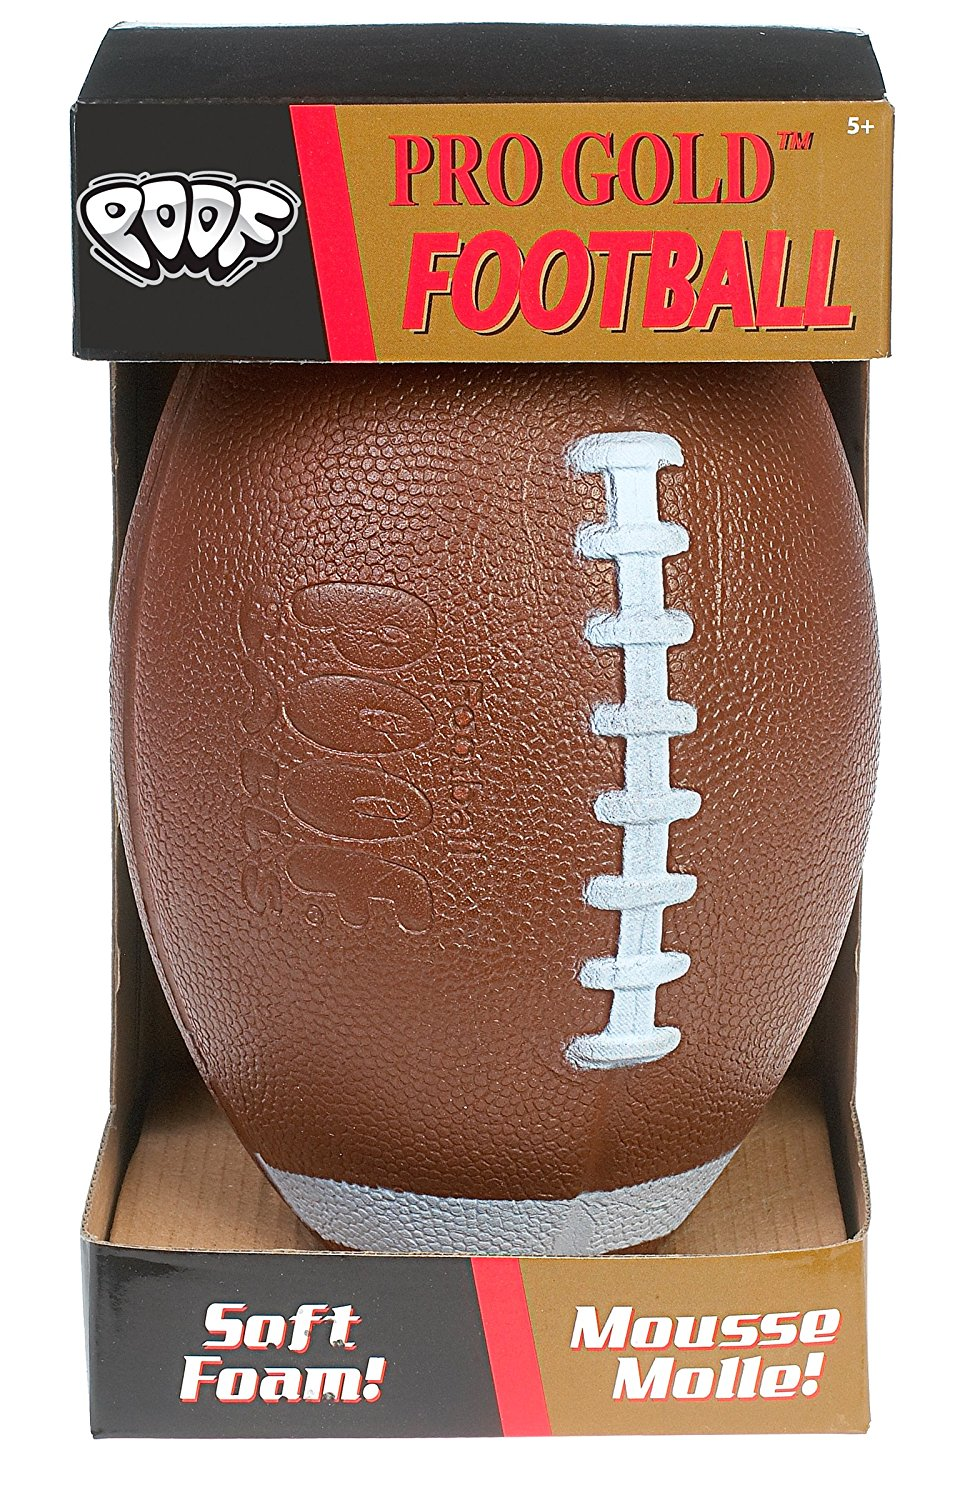 Pro Gold Football By POOF by